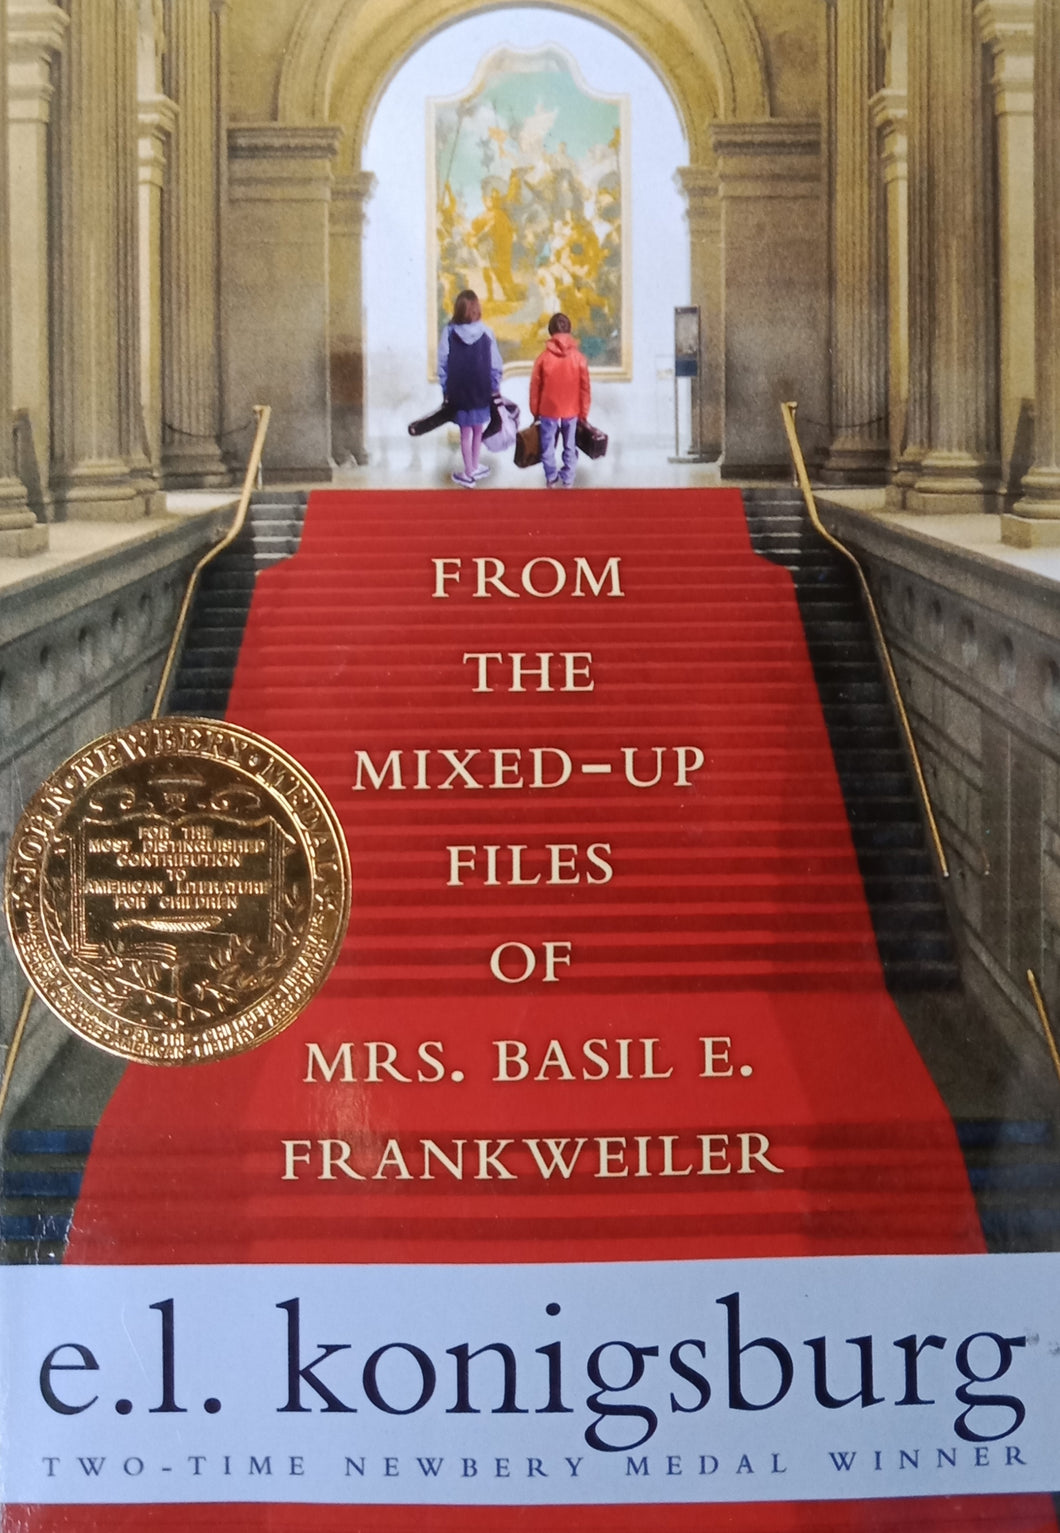 From the Mixed Up File of Mrs.Basil E. Frankweiler by e.l. Koningsburg